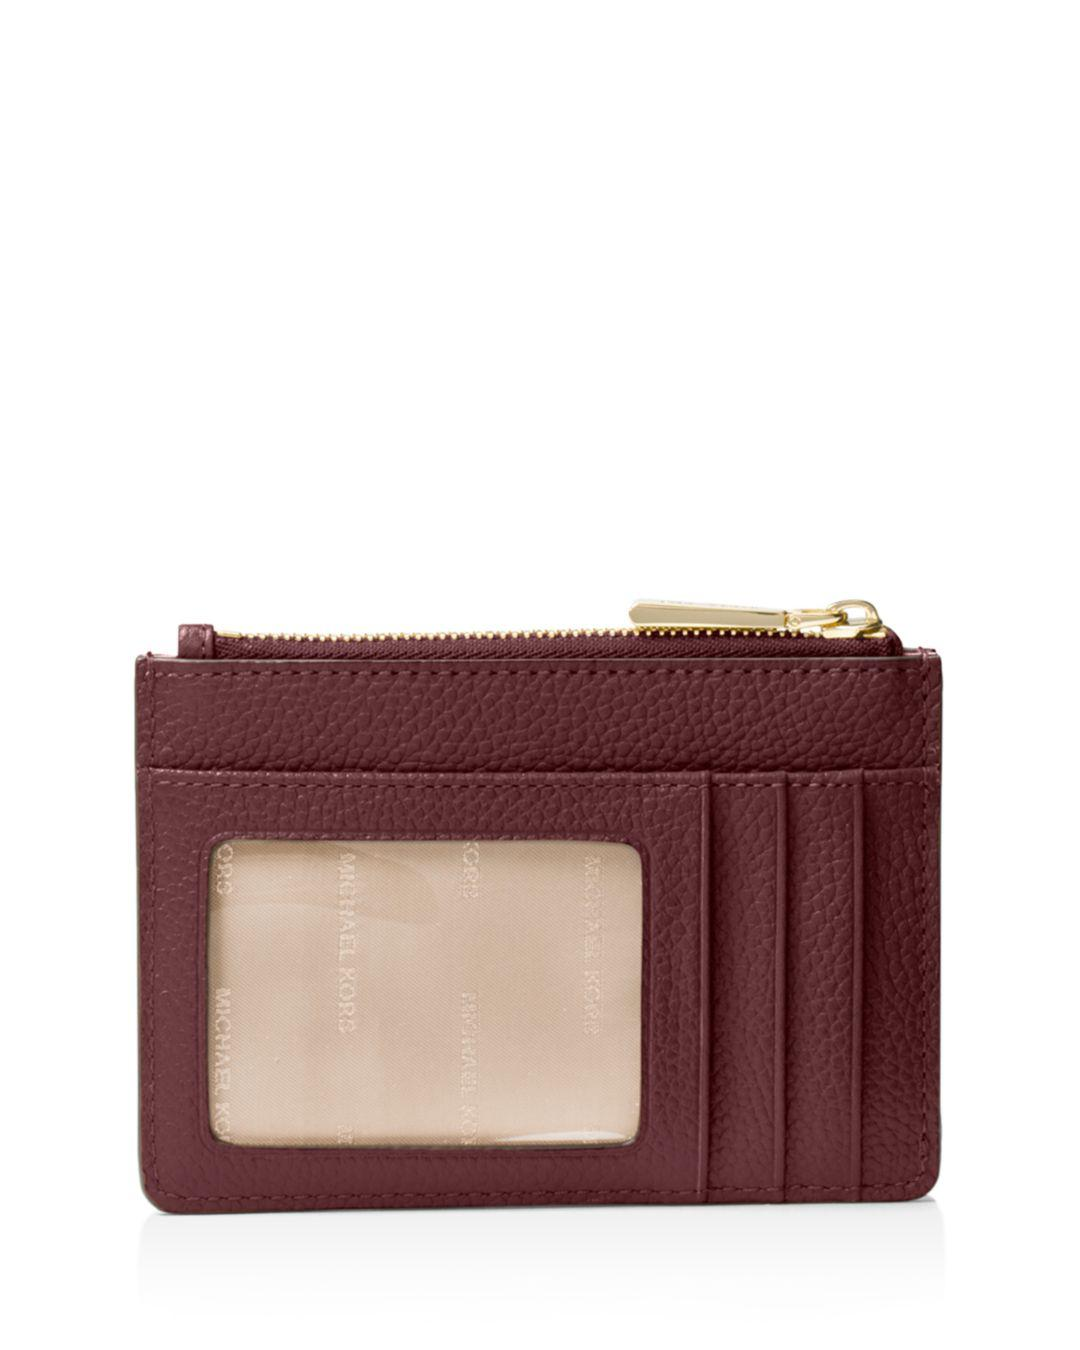 71c46e89e96f Lyst - Michael Michael Kors Small Leather Wristlet in Red